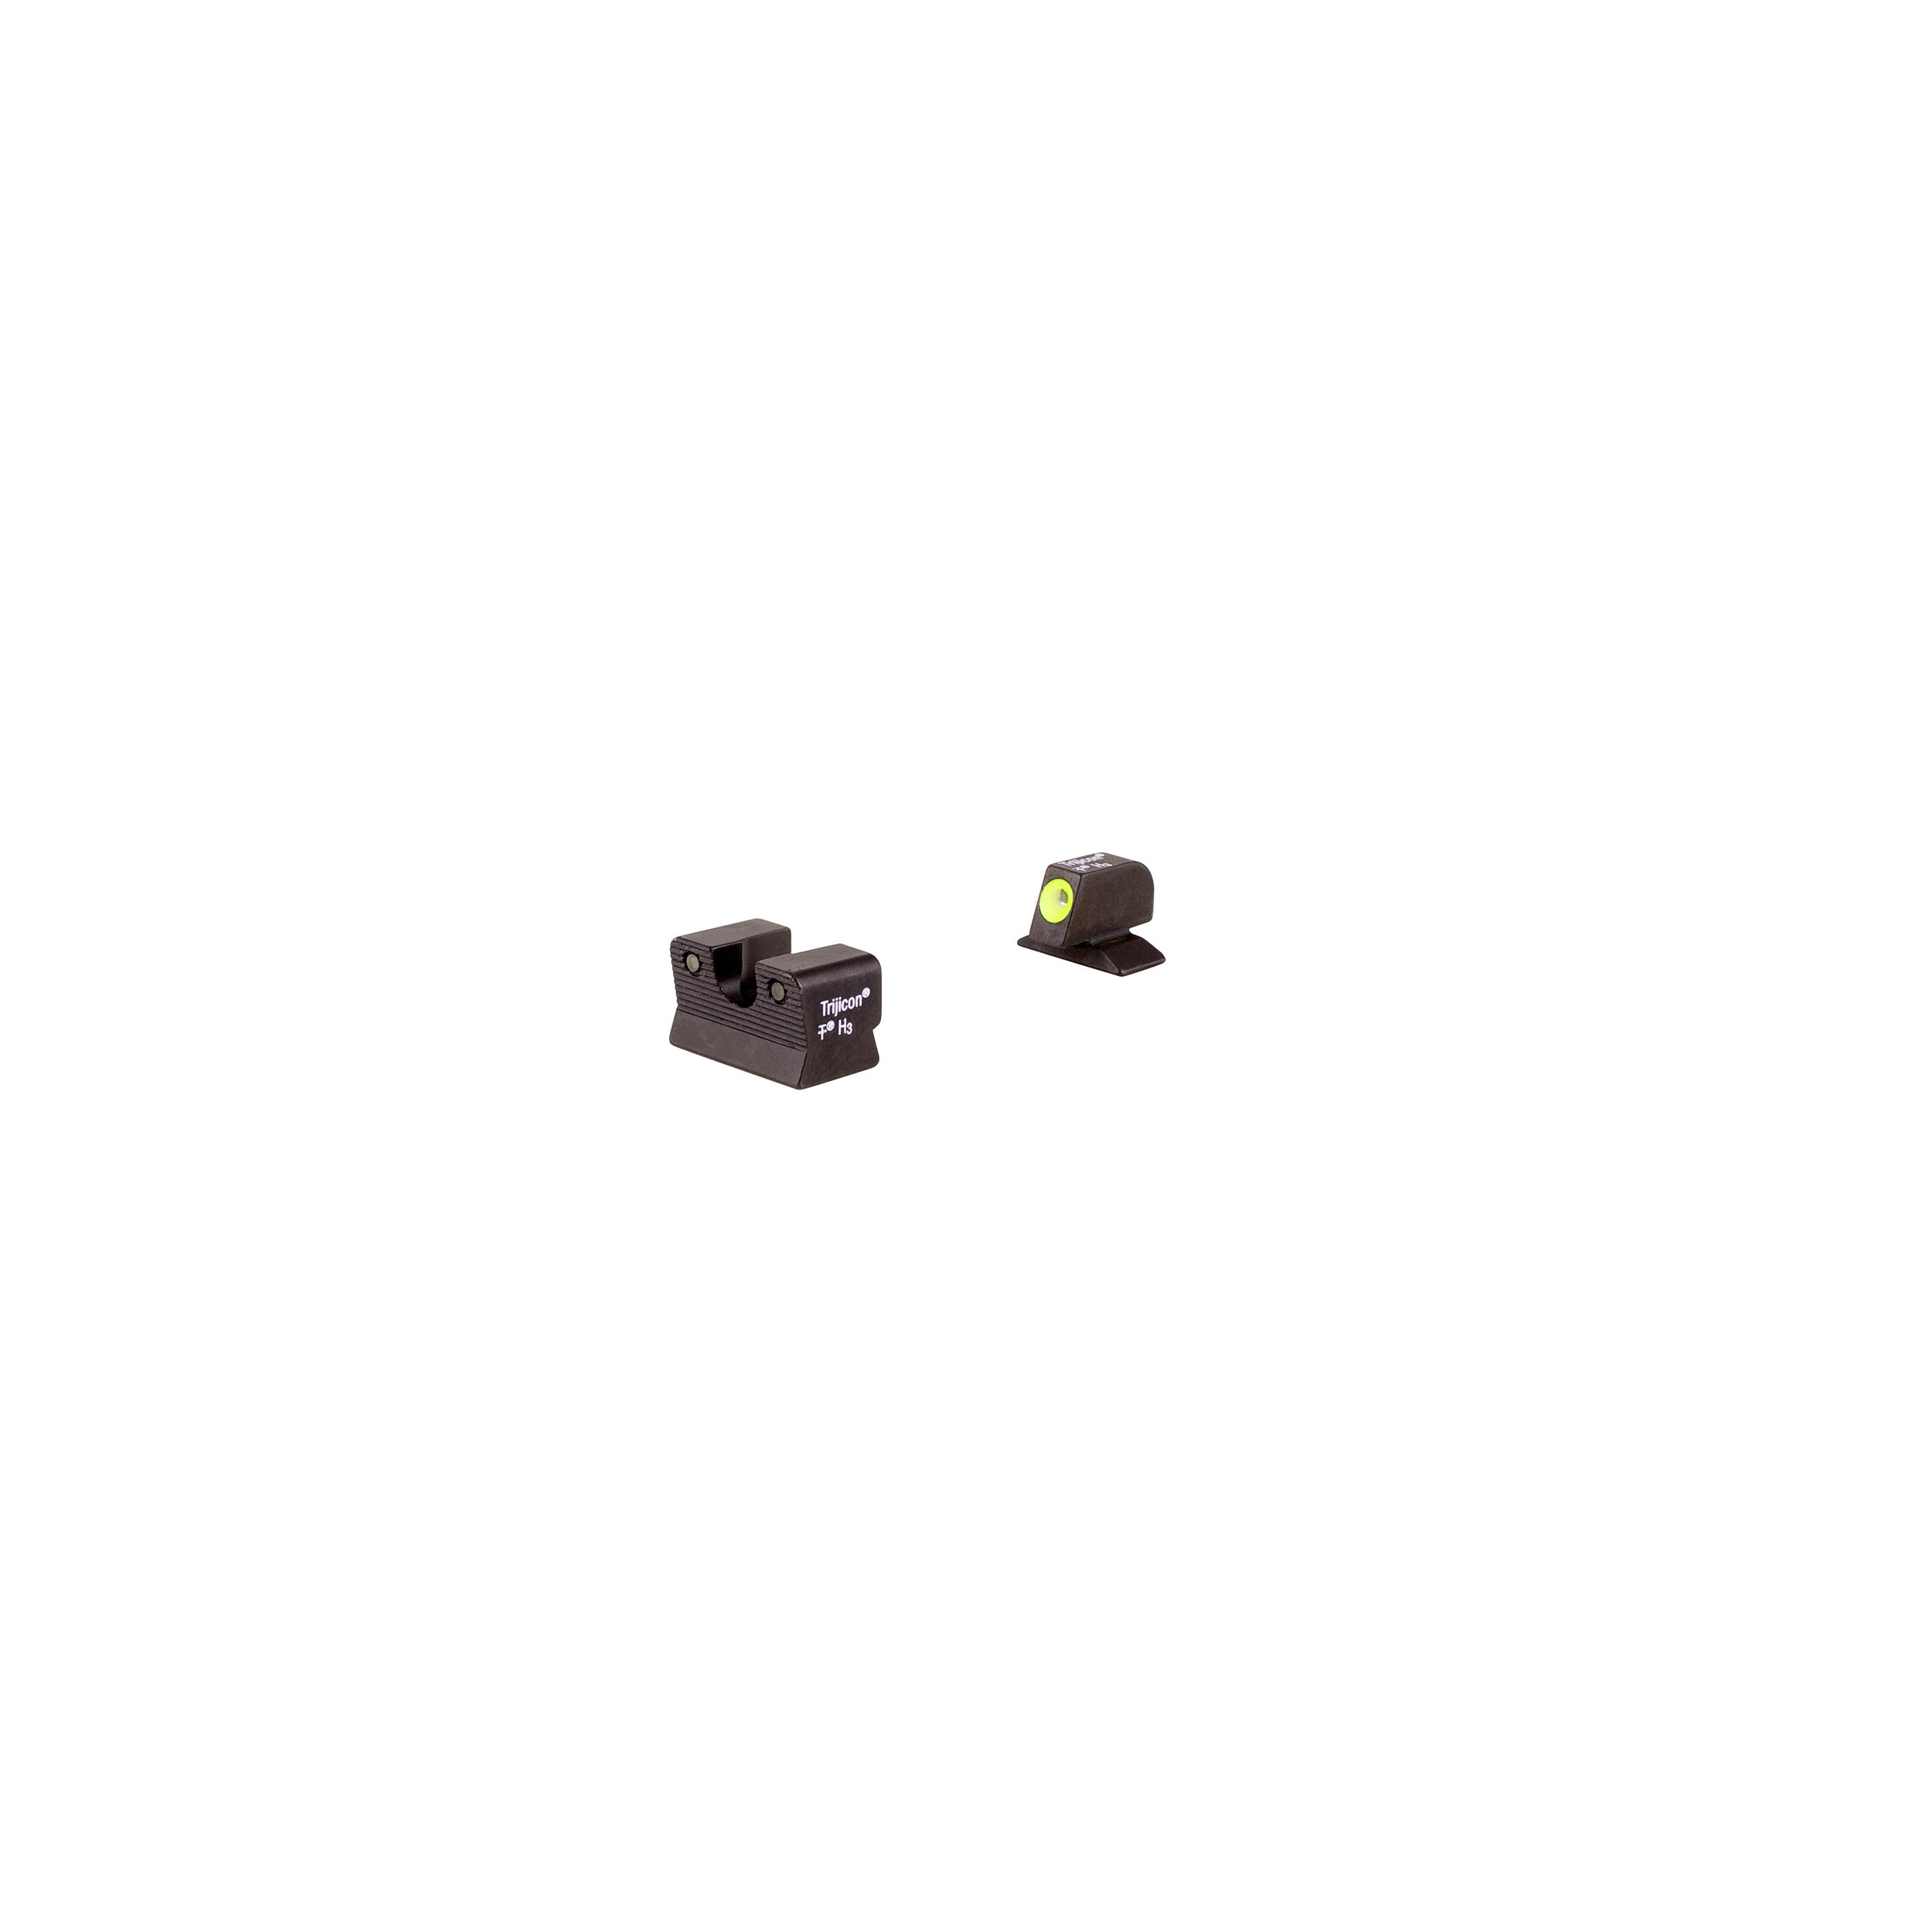 Trijicon Beretta HD Night Sight Set 92 96A1 Models, Yellow Front Outline Lamp by Trijicon